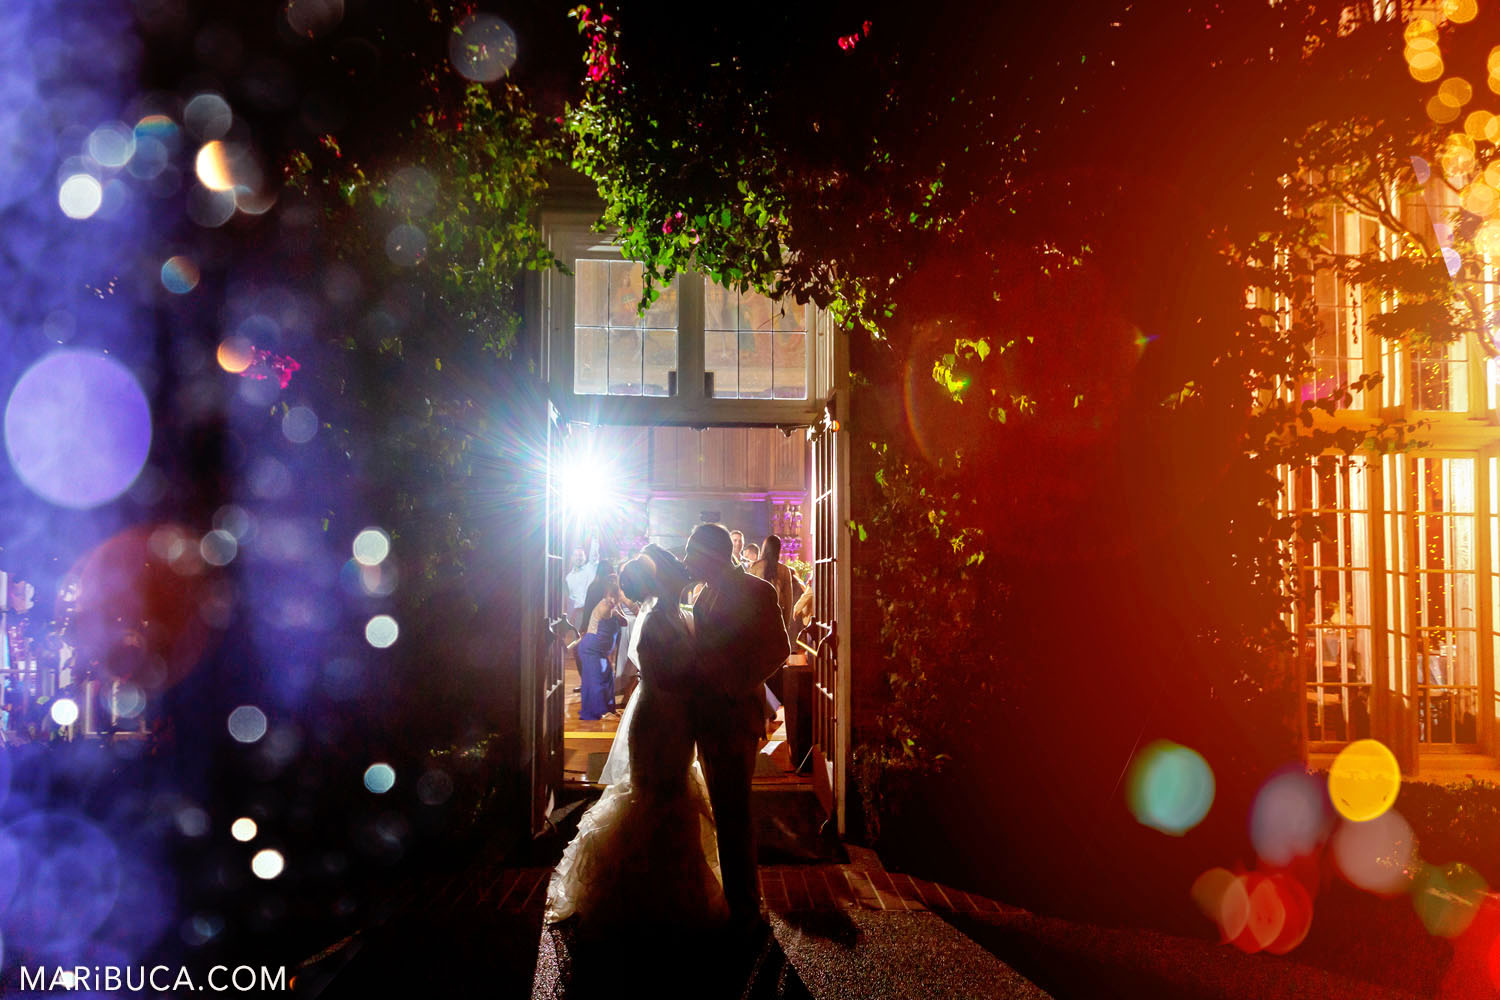 bride and groom on the background of Grand Hall and dancing guests, surrounded by purple-orange light and multicolored bokeh during night time wedding in the Kohl Mansion, Burlingame